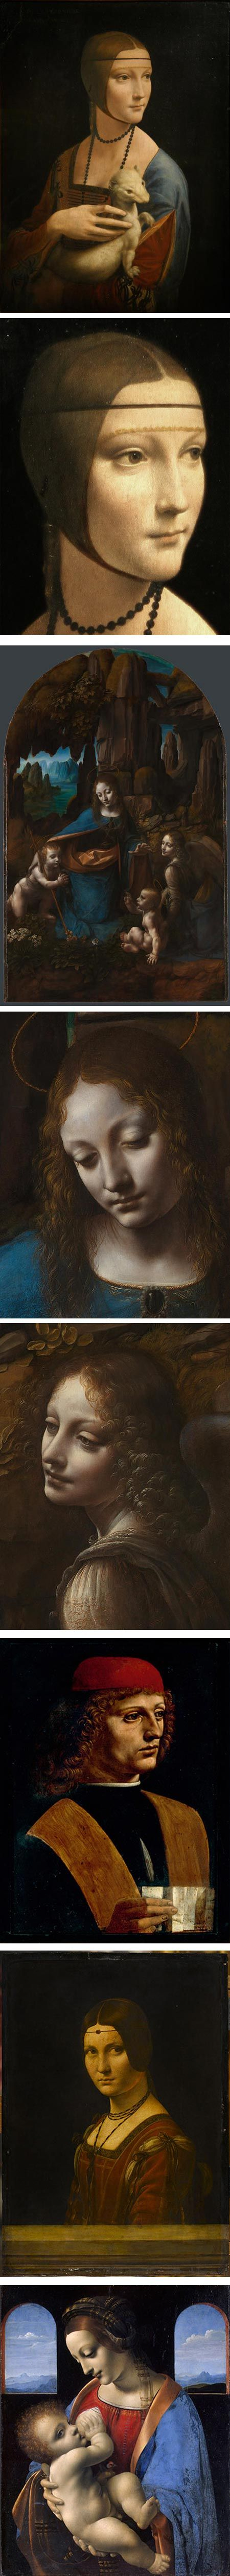 Leonardo Da Vinci's Paintings